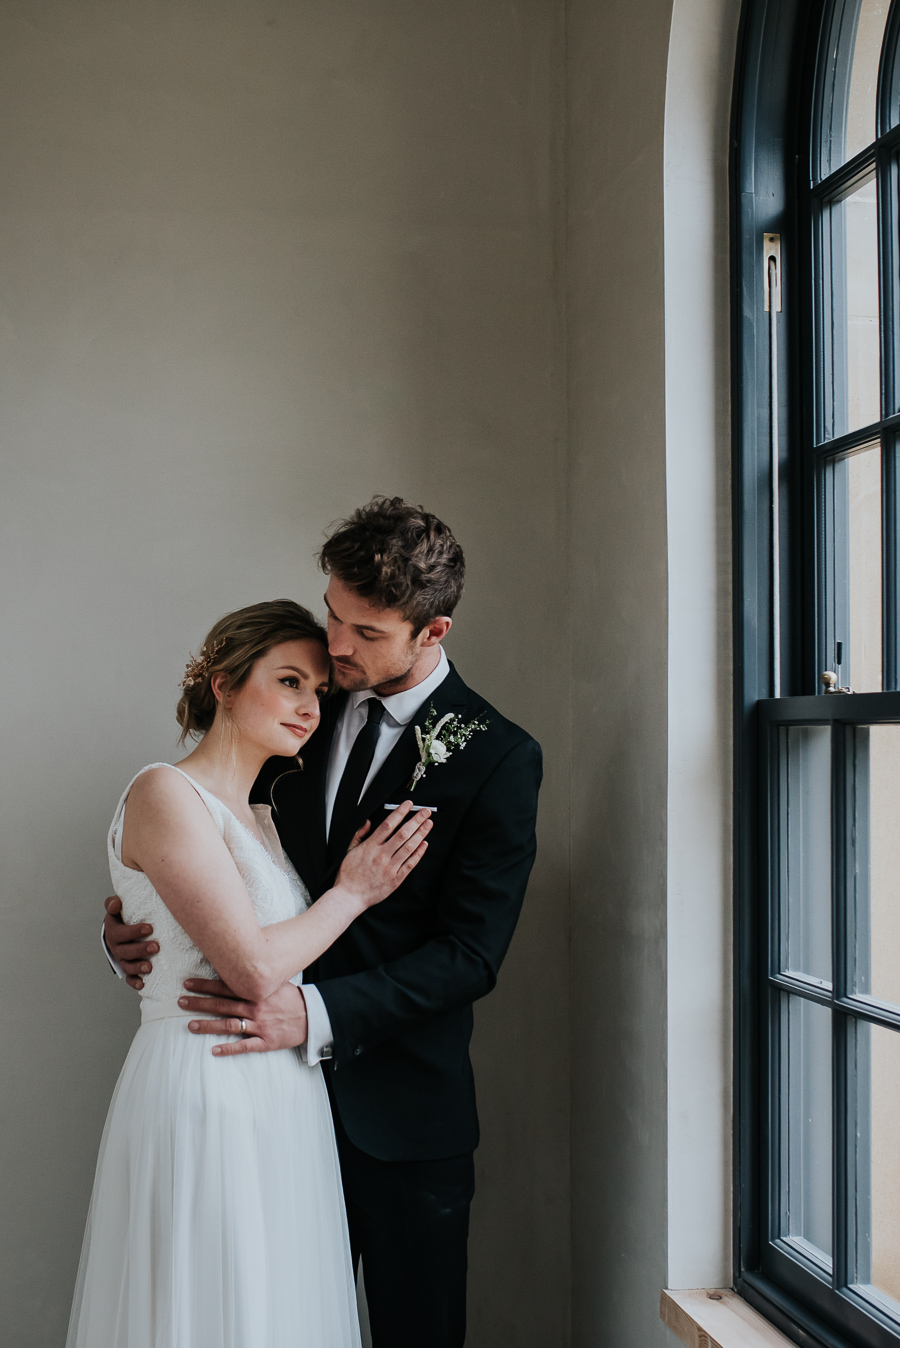 Michelle Cordner Photography on the English Wedding Blog (33)